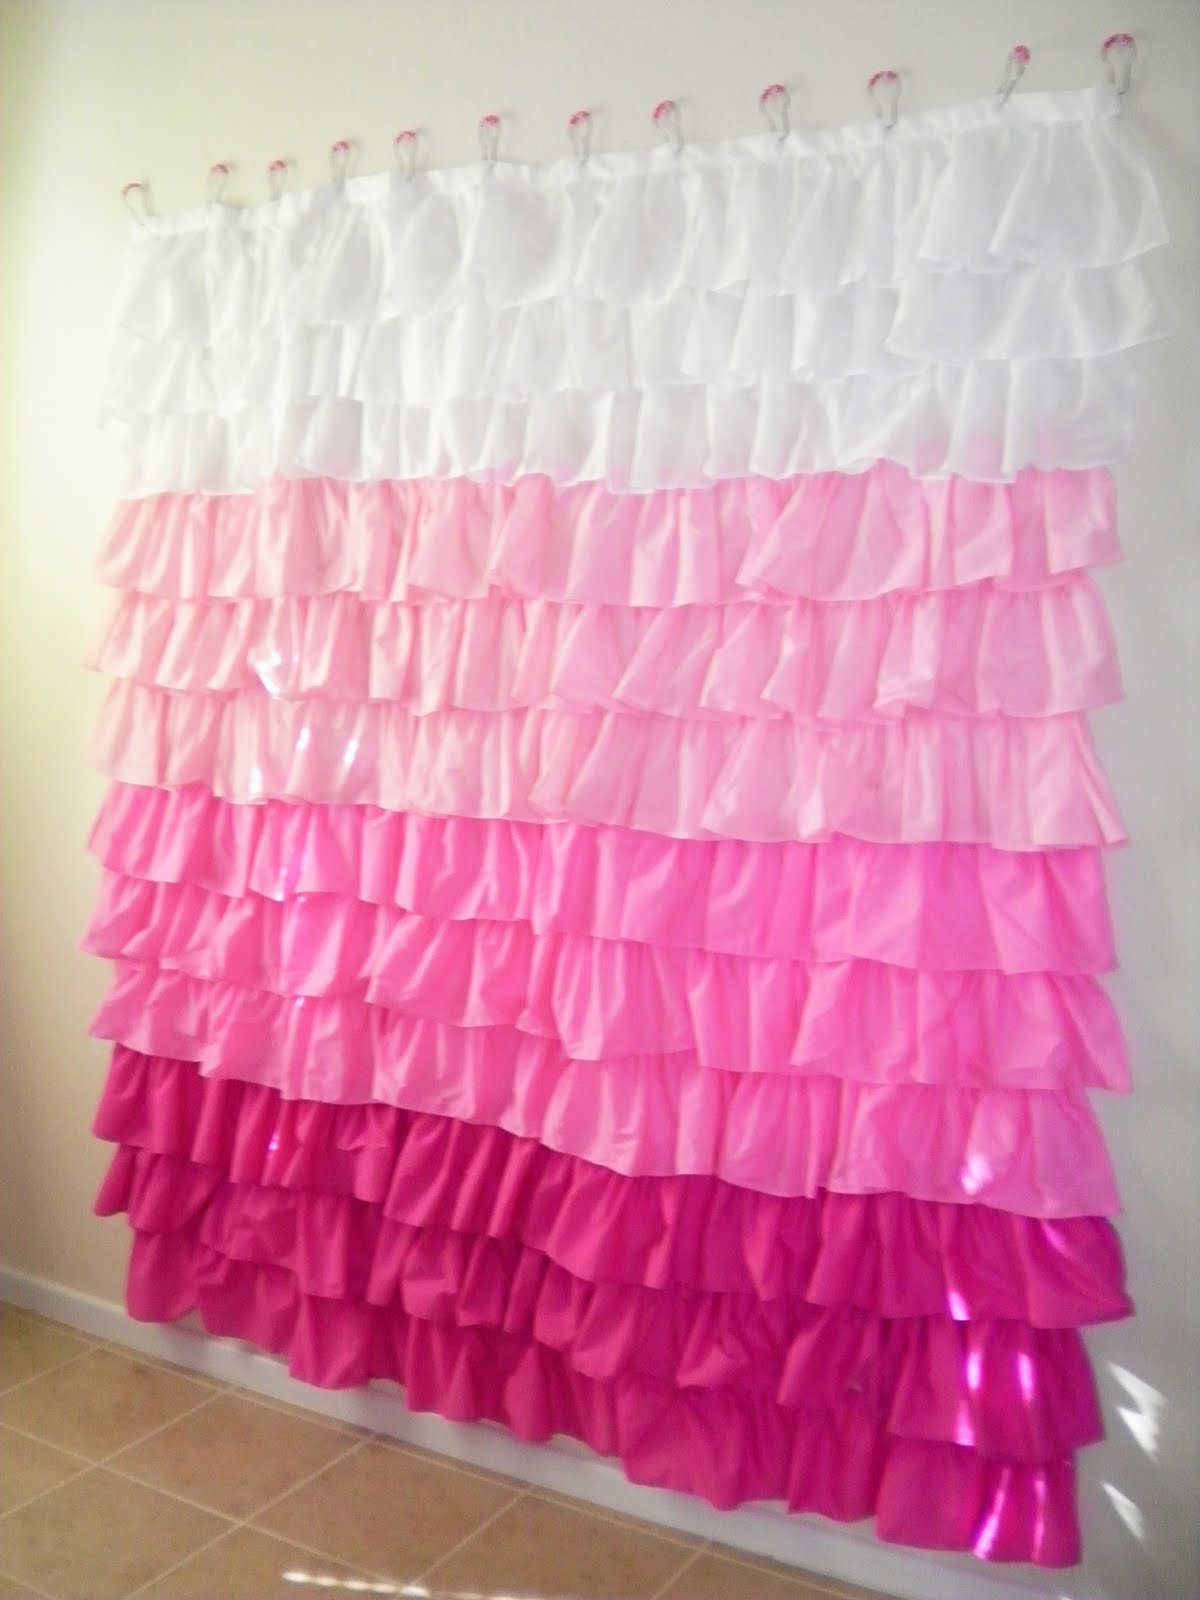 justcallmeblessed: oodles of ruffles shower curtain